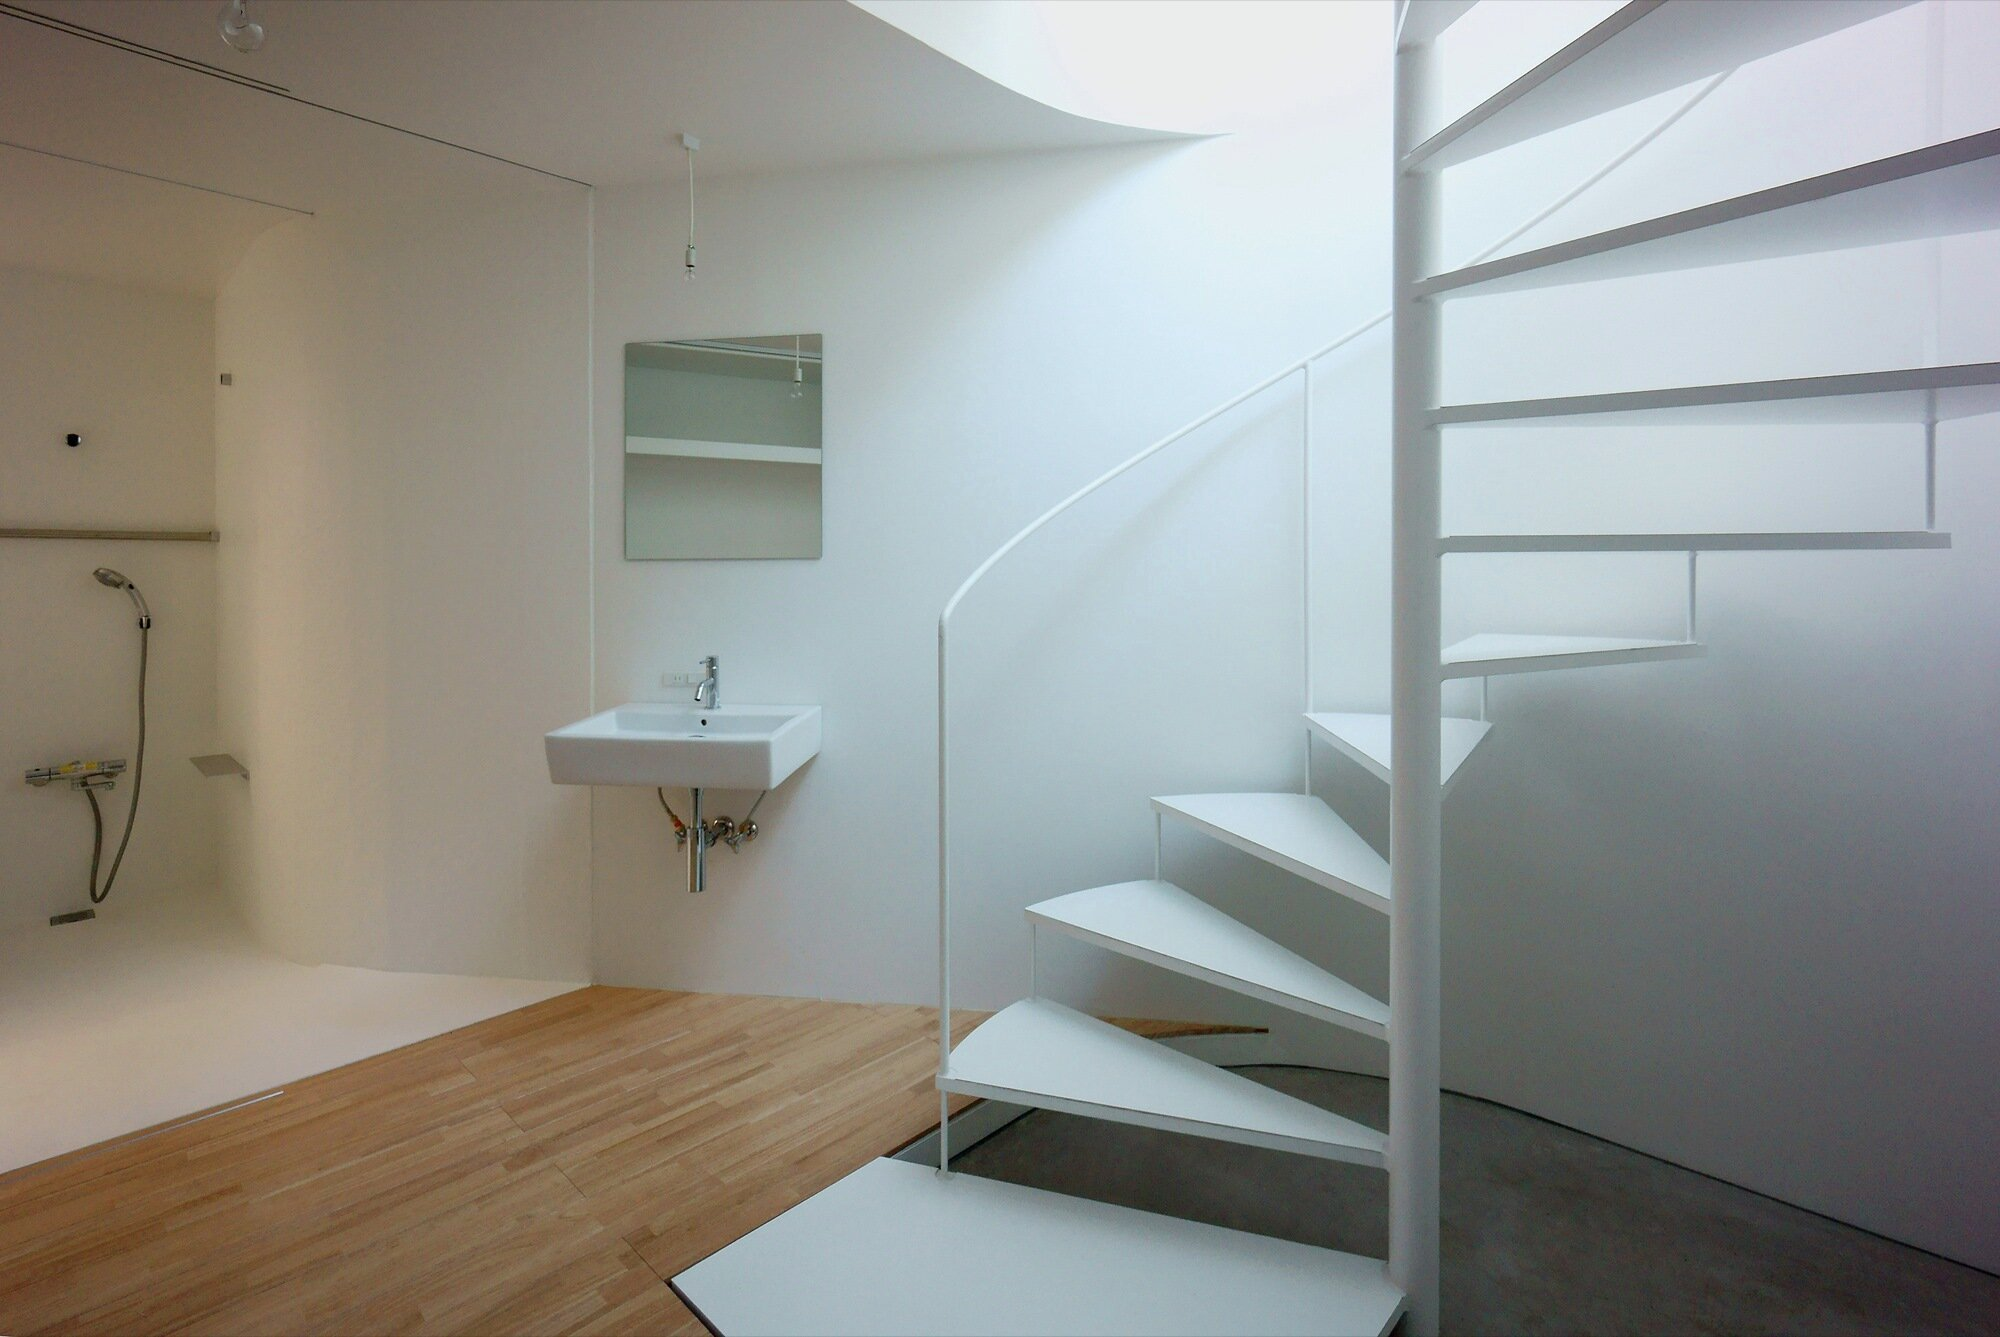 Townhouse in Takaban - Niji Architects - Tokyo - Staircase and Bathroom - Humble Homes